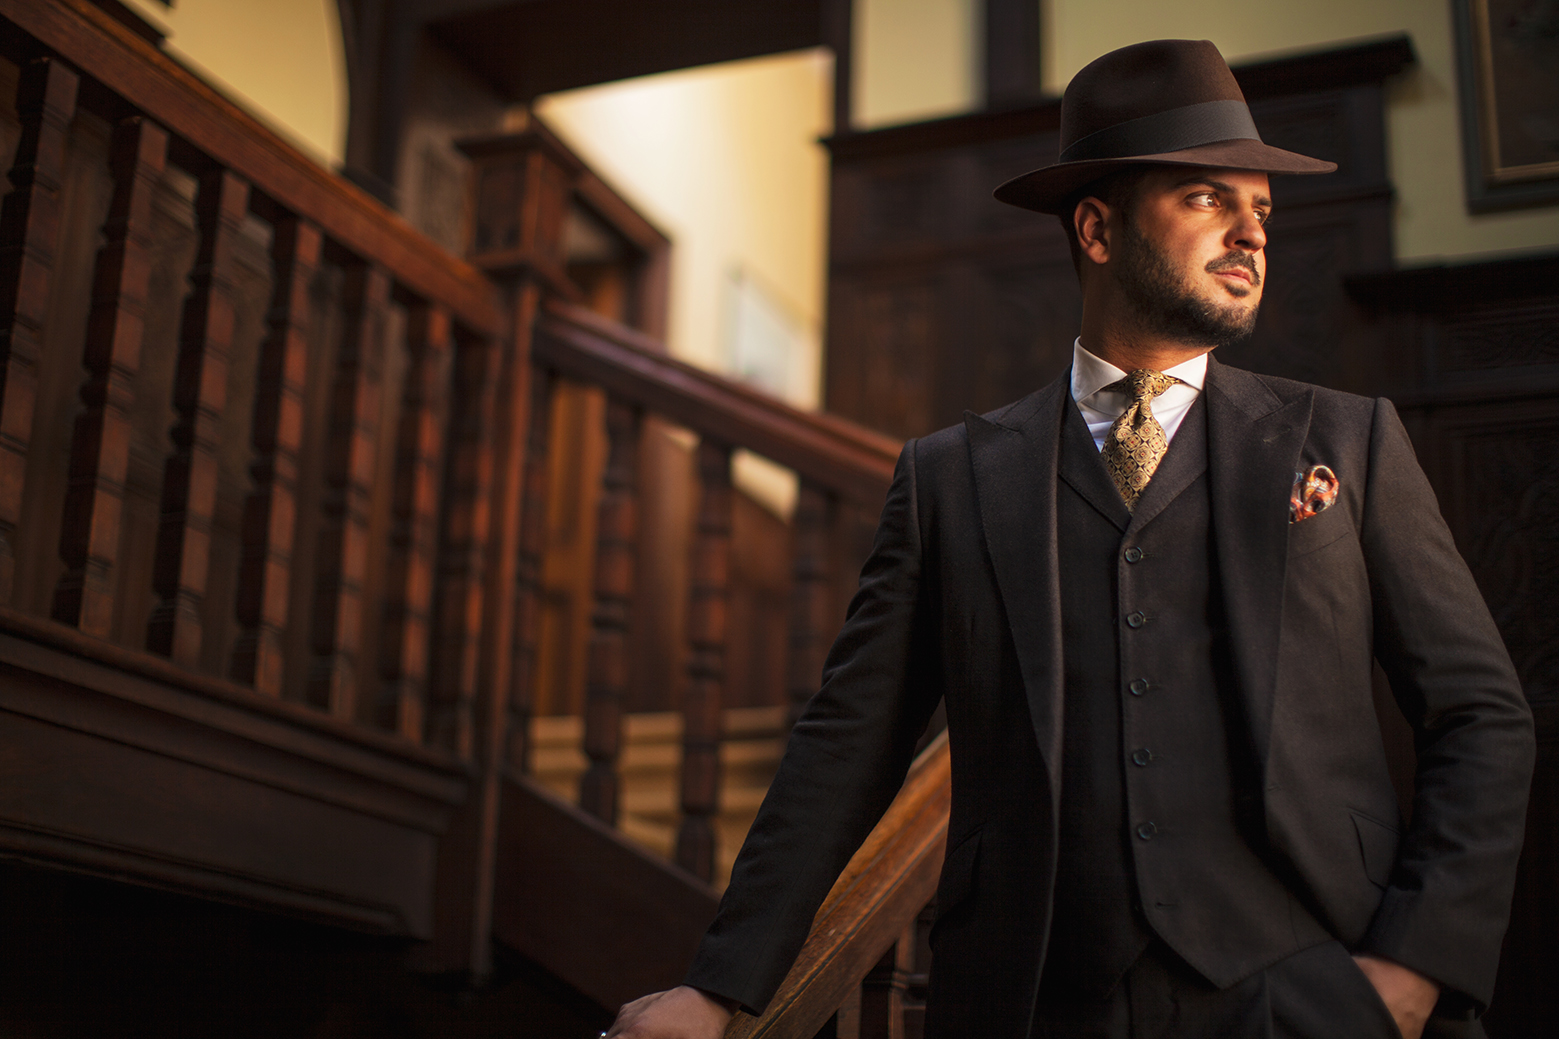 Man wearing tailored suit and hat posing in stairs